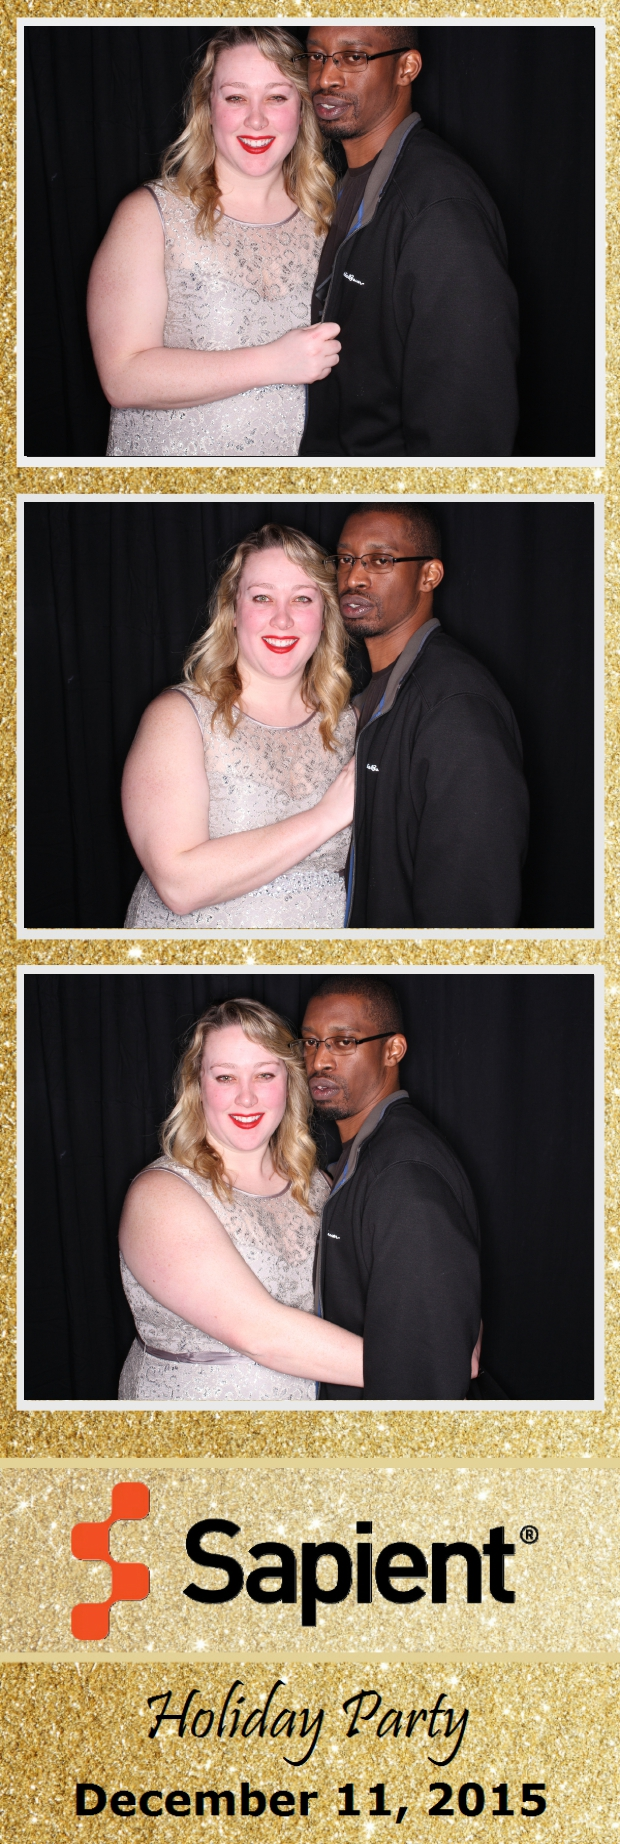 Guest House Events Photo Booth Sapient Holiday Party (98).jpg